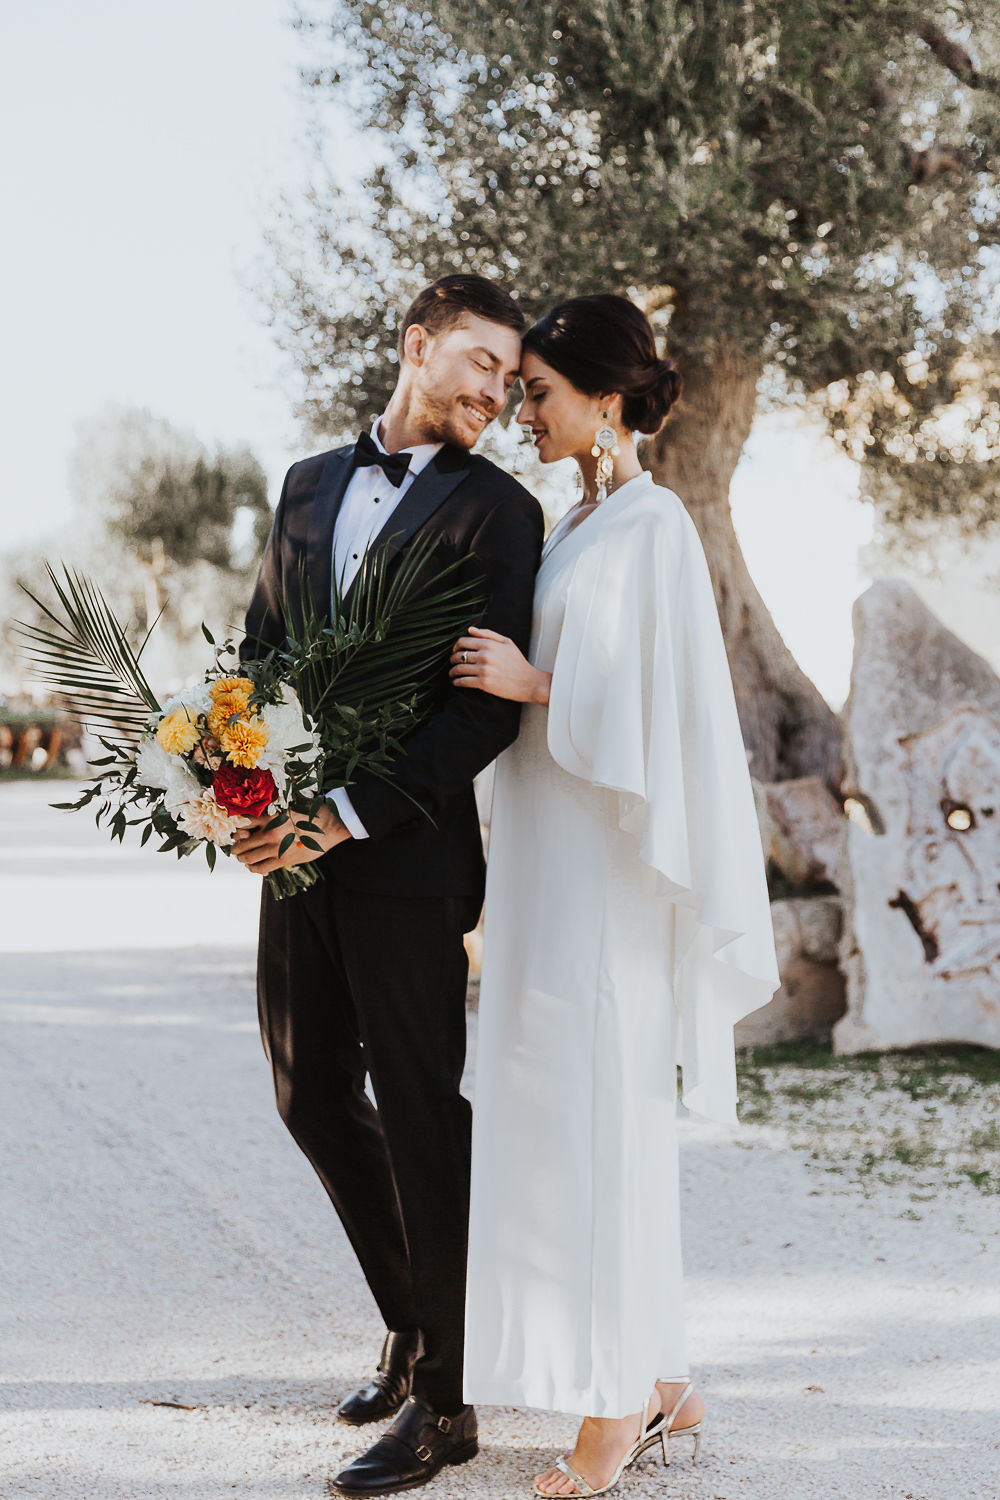 Wedding_Boutique_Italy_chrissy_gilmartin_Photography_Styled_Shoot_Ostuni_2018_Blog(8of187).jpg